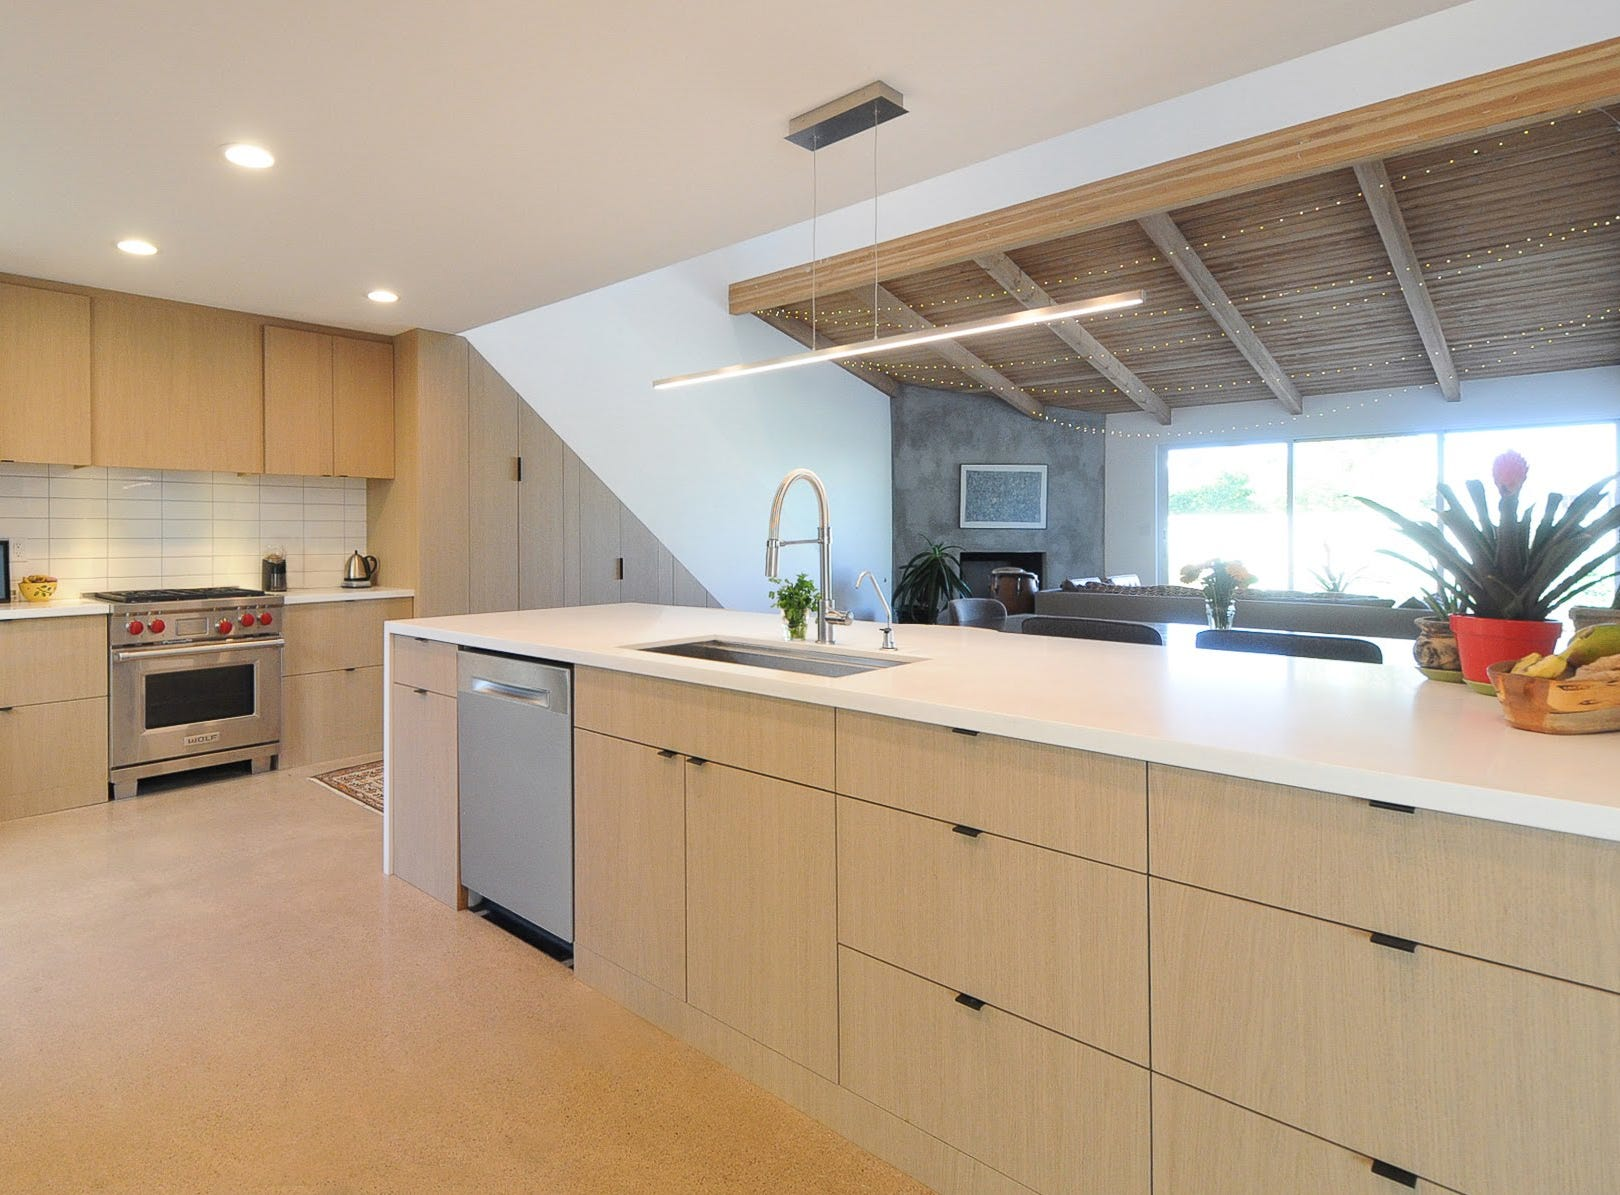 An open kitchen feels even more so thanks to elevated ceilings in the adjacent family room.